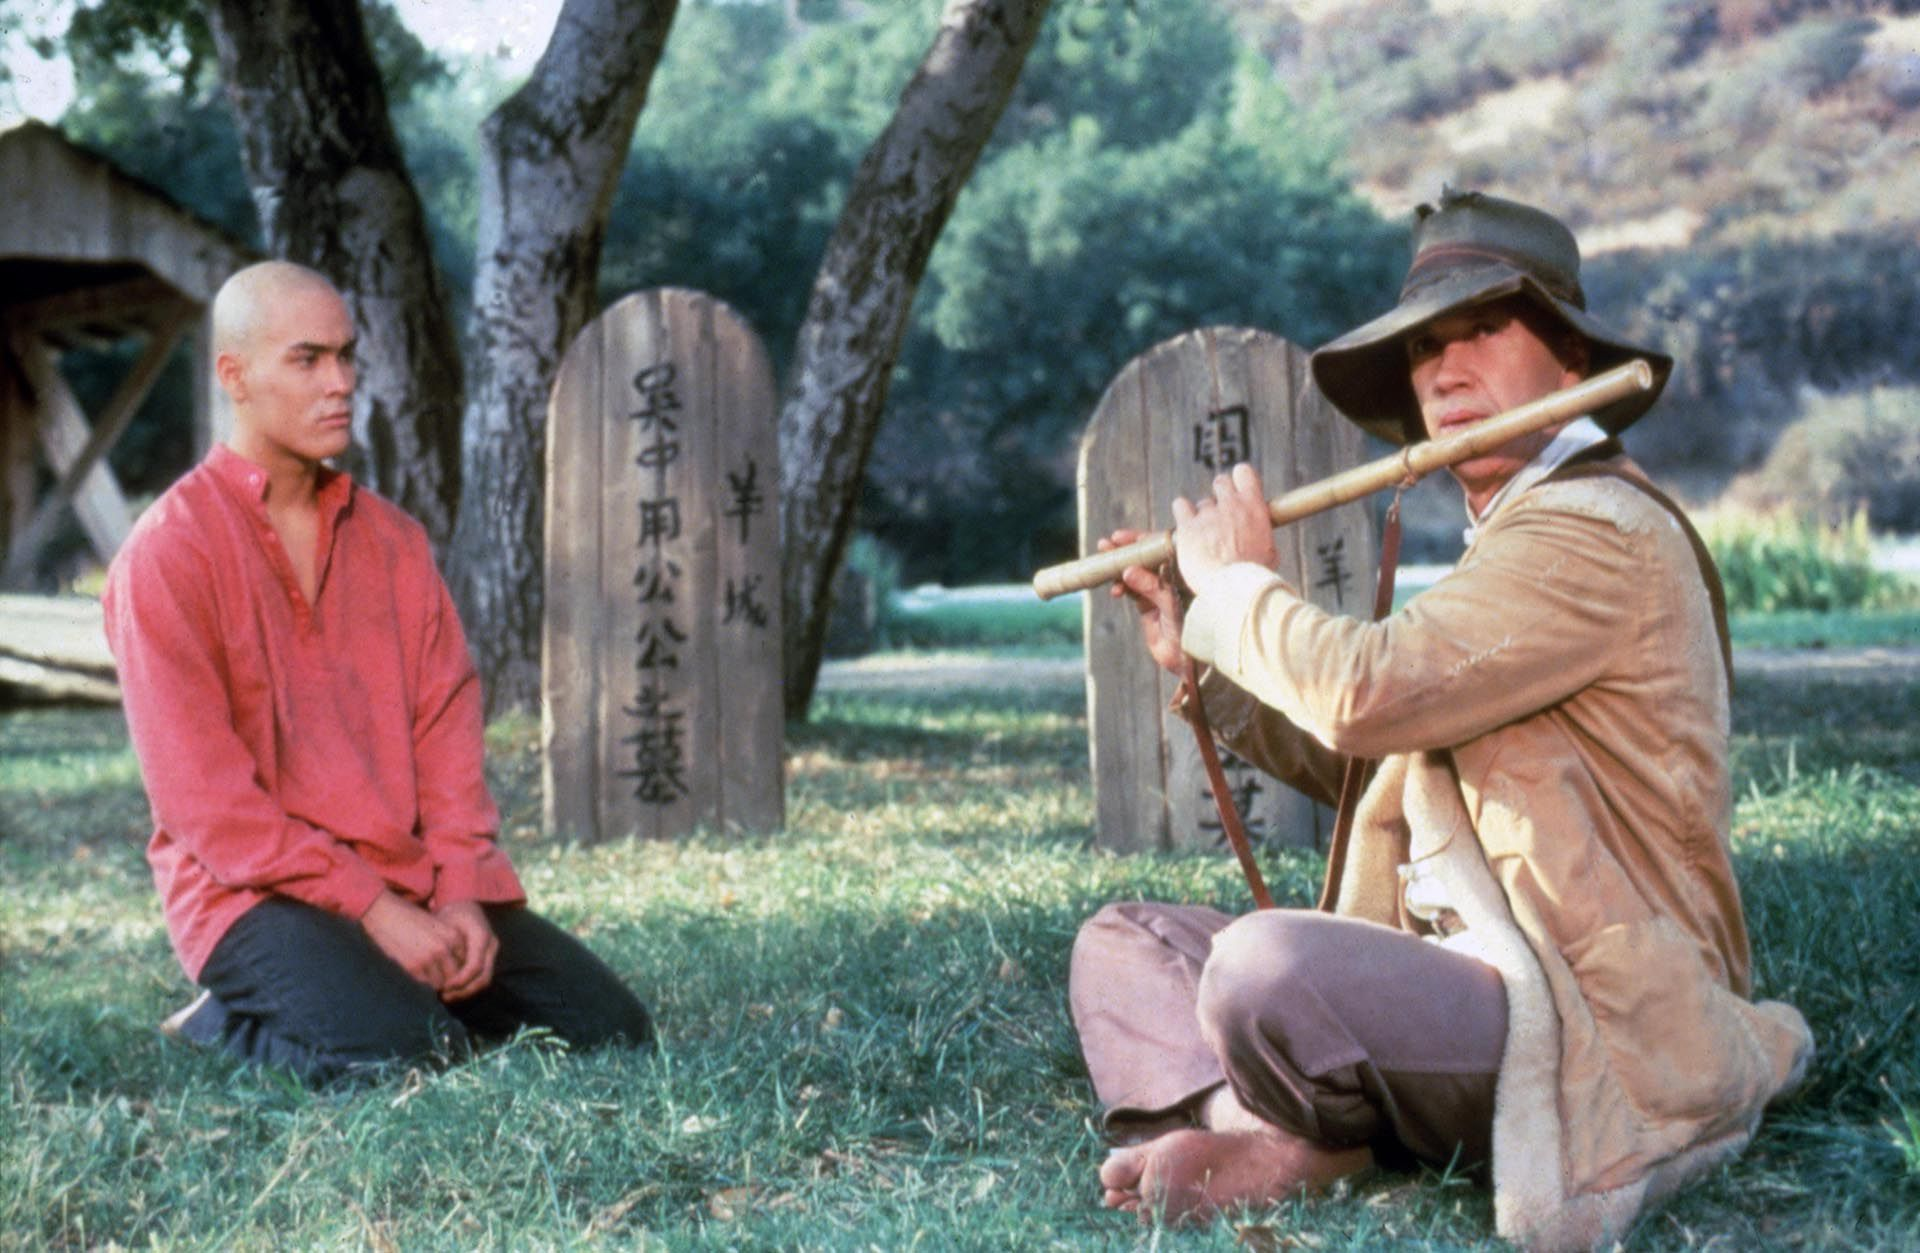 David Carradine con Brandon Lee, en el filme Kung Fu, de 1986 (Foto: Grosby Group)